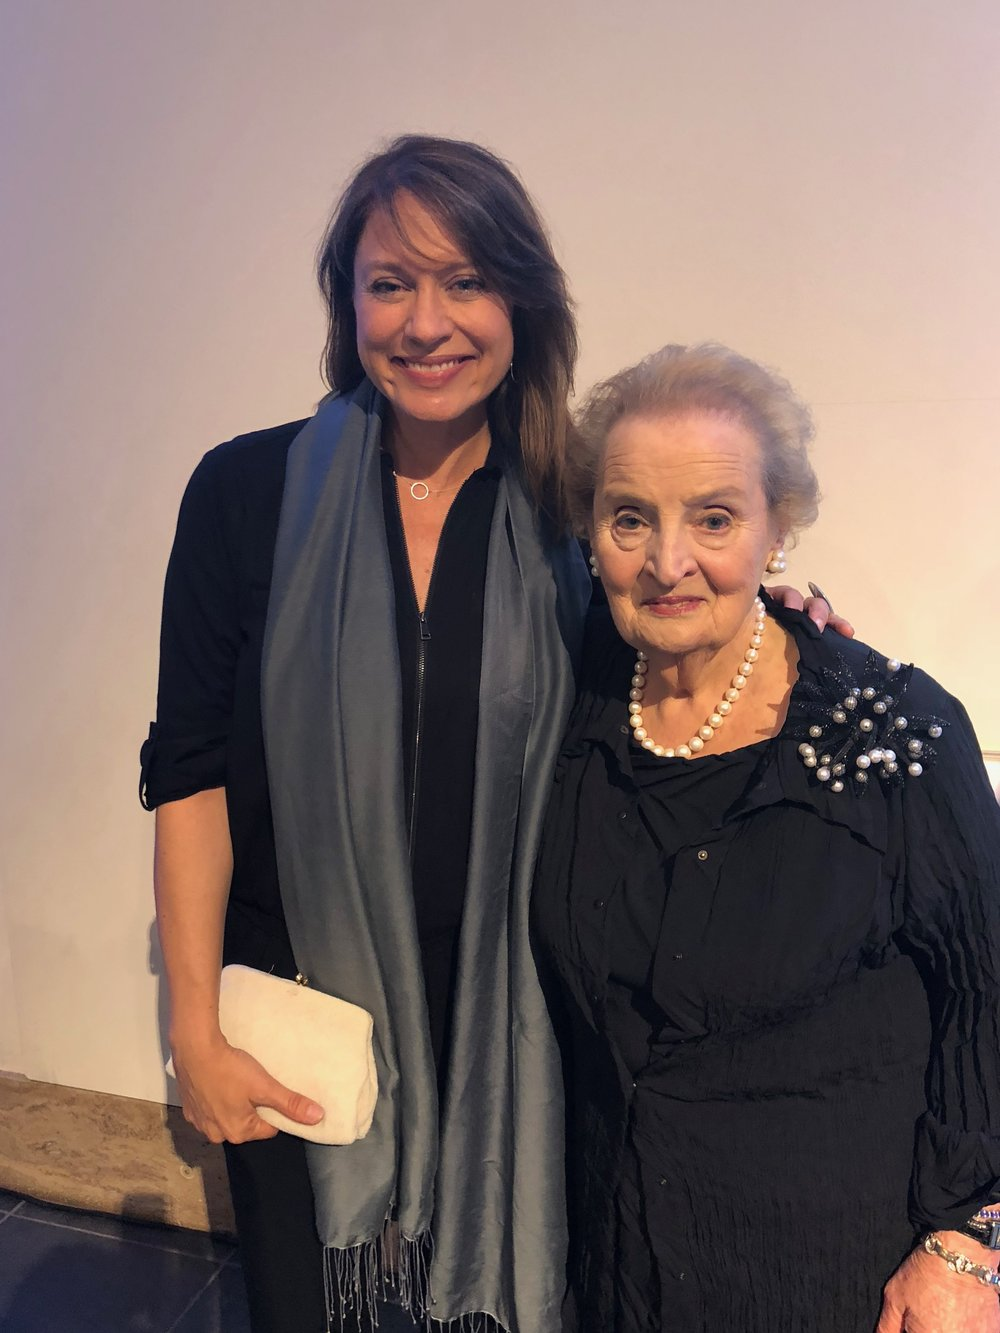 Andrea poses for a photo with Madeleine Albright in Berlin.